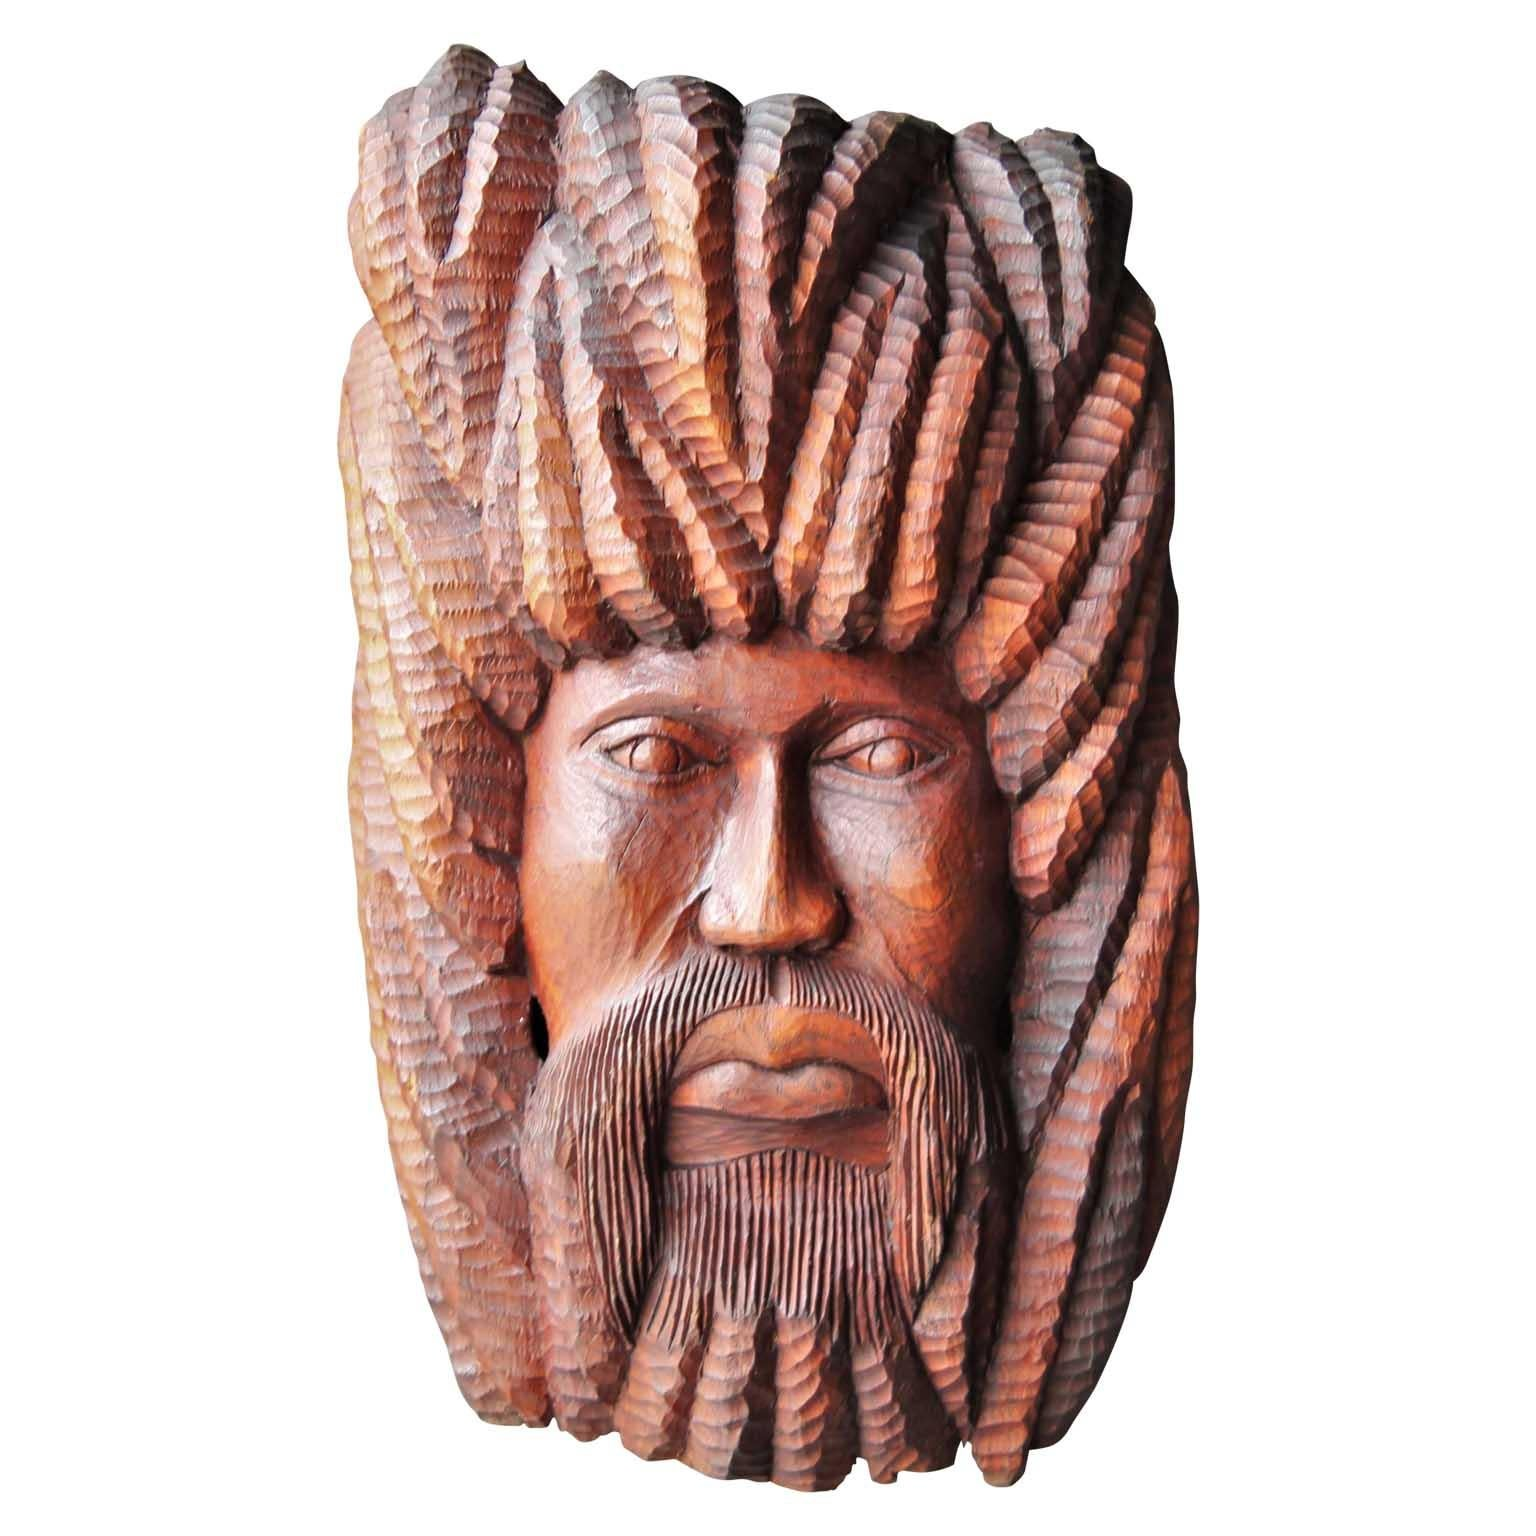 Abstract Wooden Teak Hand Carved Figurative Face Sculpture